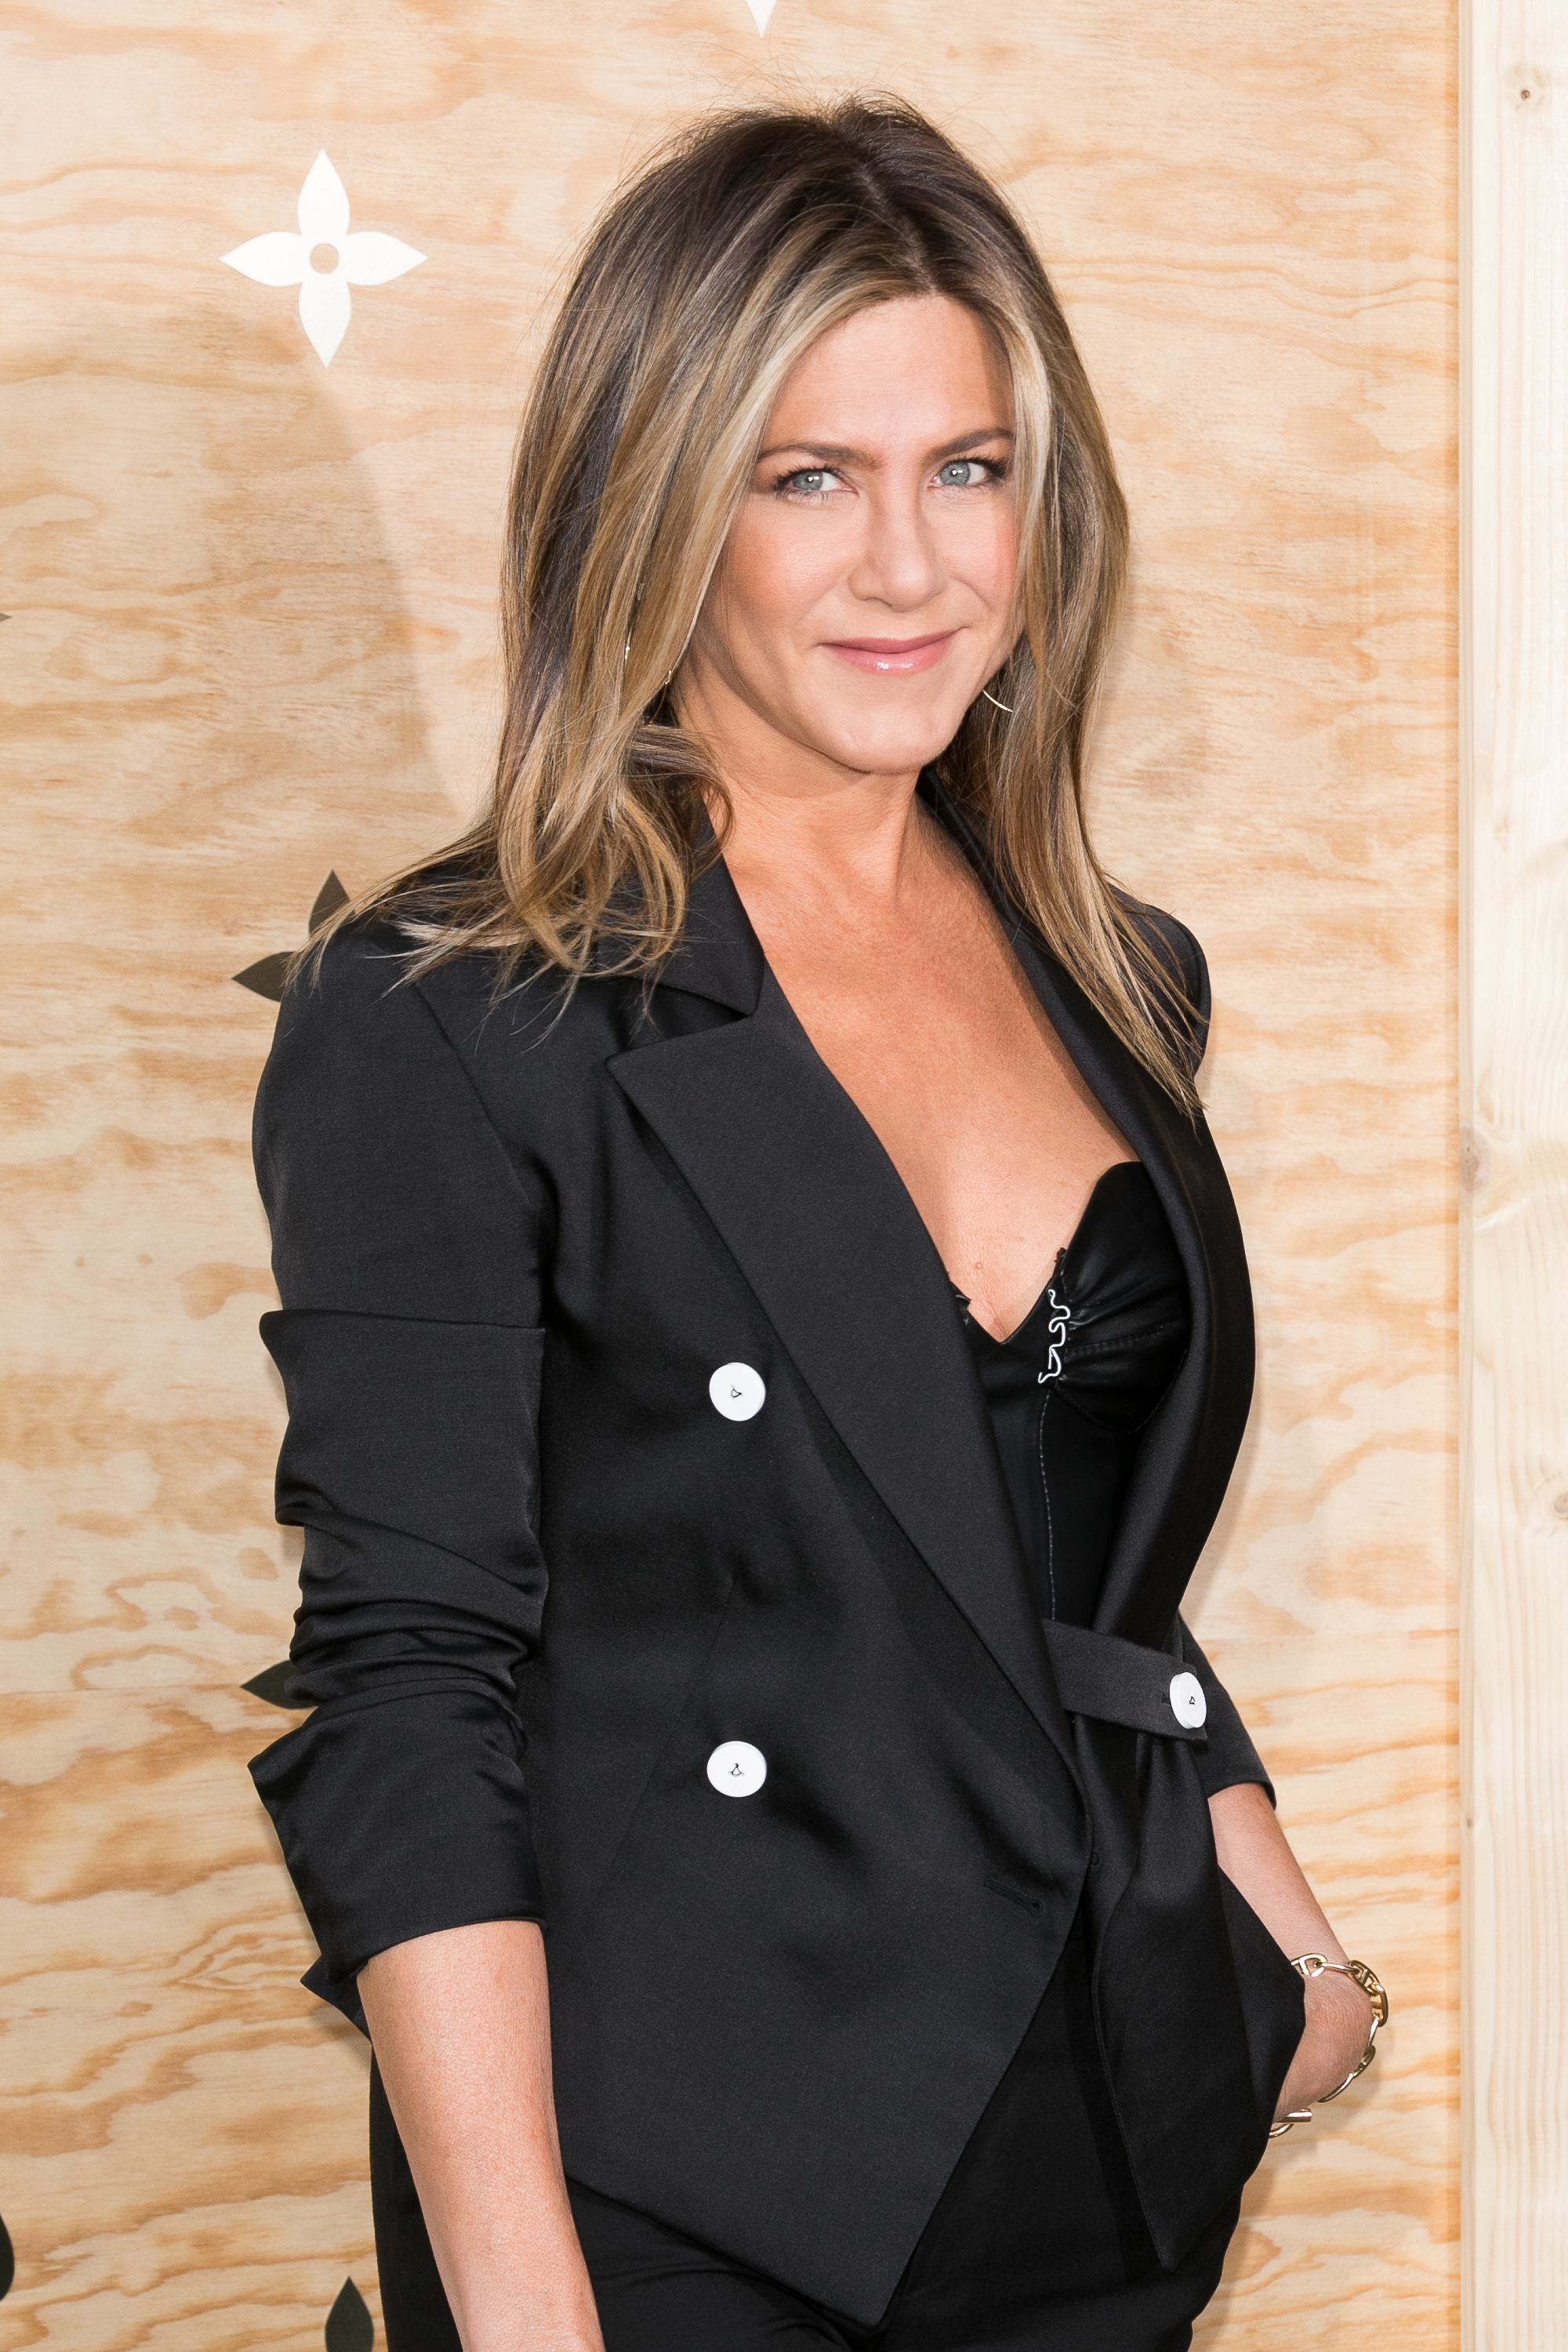 "<p>Whether it's on the red carpet or running errands, Jennifer Aniston never fails to look radiant.</p> <p>While I'm sure her good genes and glam squad play a part, the actress has a secret anti-ageing weapon she's been keeping close to her chest, until now that is.</p> <p>Aniston has revealed to <em>Well and Good</em> that she credits her glow to adding a <a href=""https://www.amazon.com/gp/product/B00NLR1PX0/ref=as_li_qf_sp_asin_il_tl?ie=UTF8&camp=1789&creative=9325&creativeASIN=B00NLR1PX0&linkCode=as2&tag=welgoo-20&linkId=S3KITY4EF3BOJAXB"" target=""_blank"">collagen peptide</a> in her morning smoothie.</p> <p>""I'll have a shake, with some sort of pure protein, then bananas, blueberries, frozen cherries, stevia, a vegetable mix of dynamic greens that goes in there, maca powder, and a little cacao. There's a collagen peptide that I've been loving—I've been seeing a difference,"" she reveals.</p> <p>""My nails are stronger and there's a healthier… how do you explain it? A glow. It's sort of that working from the inside-out thing.""</p> <p>Collagen is more than just a buzzword, research shows is can be beneficial for soothing achy joints, improving gut and bone health and enhancing hair and skin strength.</p> <p>The Friends star's go-to supplement, <a href=""https://www.amazon.com/gp/product/B00NLR1PX0/ref=as_li_qf_sp_asin_il_tl?ie=UTF8&camp=1789&creative=9325&creativeASIN=B00NLR1PX0&linkCode=as2&tag=welgoo-20&linkId=S3KITY4EF3BOJAXB"" target=""_blank"">Vital Proteins</a>, is just $15.</p> <p>The 49 year-old isn't the only A-lister who has revealed her secret beauty buy. <br> <br> We've rounded up some of our favourite stars and the tried-and-true beauty picks they swear by.<br> <br> Click through to find one that's right for you.</p>"